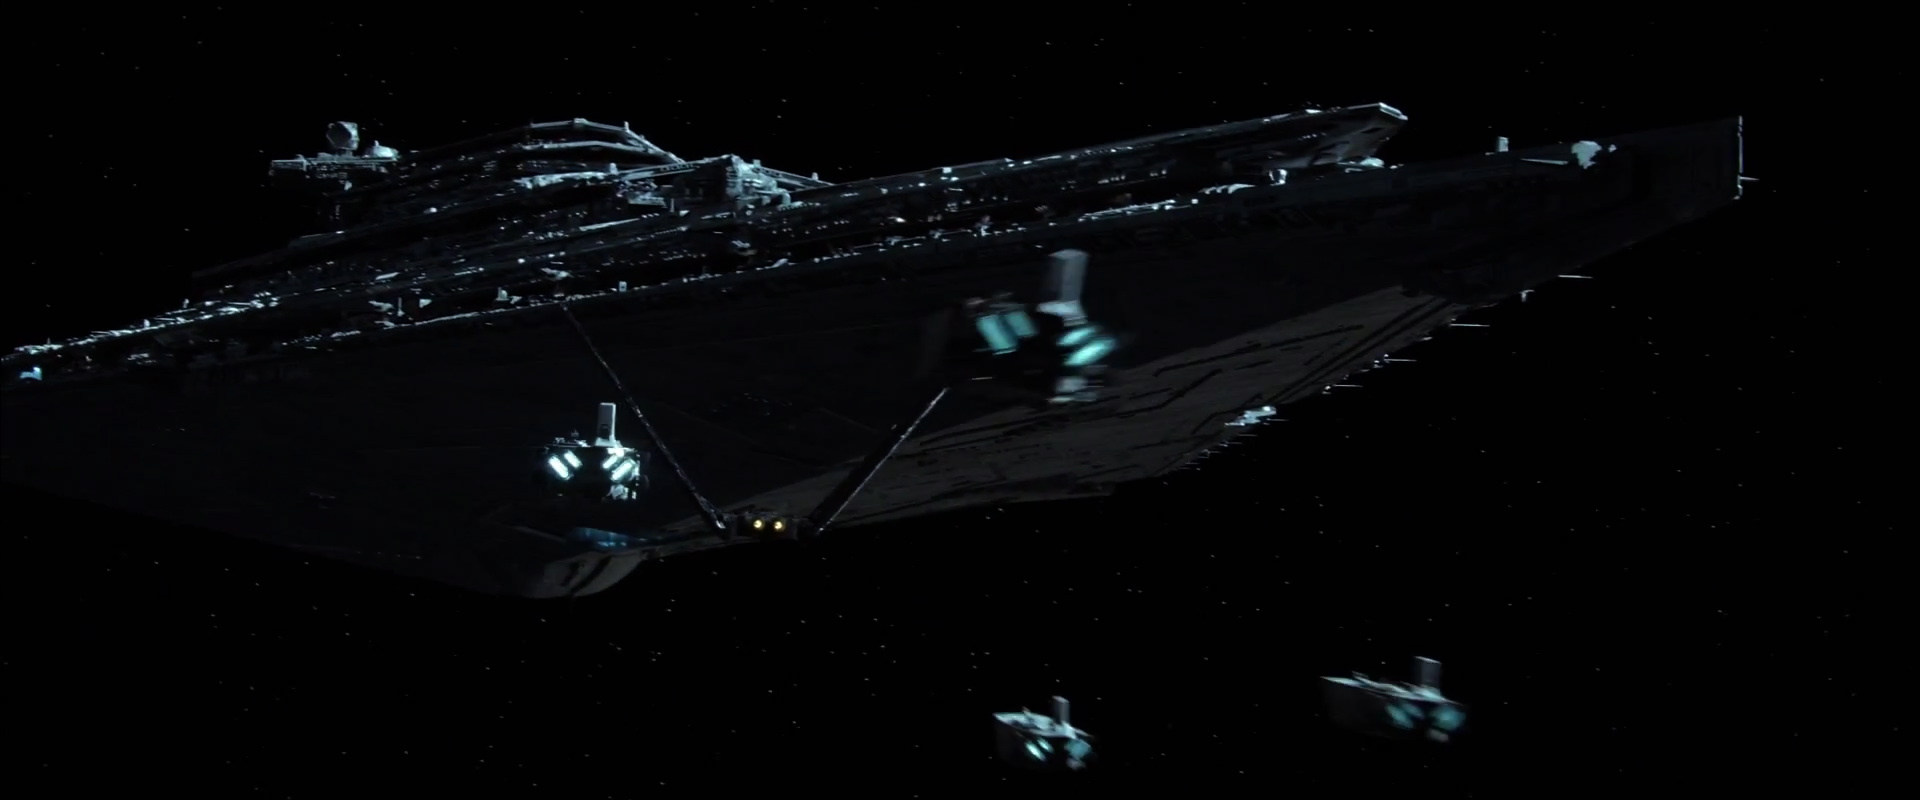 The First Order StarDestroyer and new troop transports.